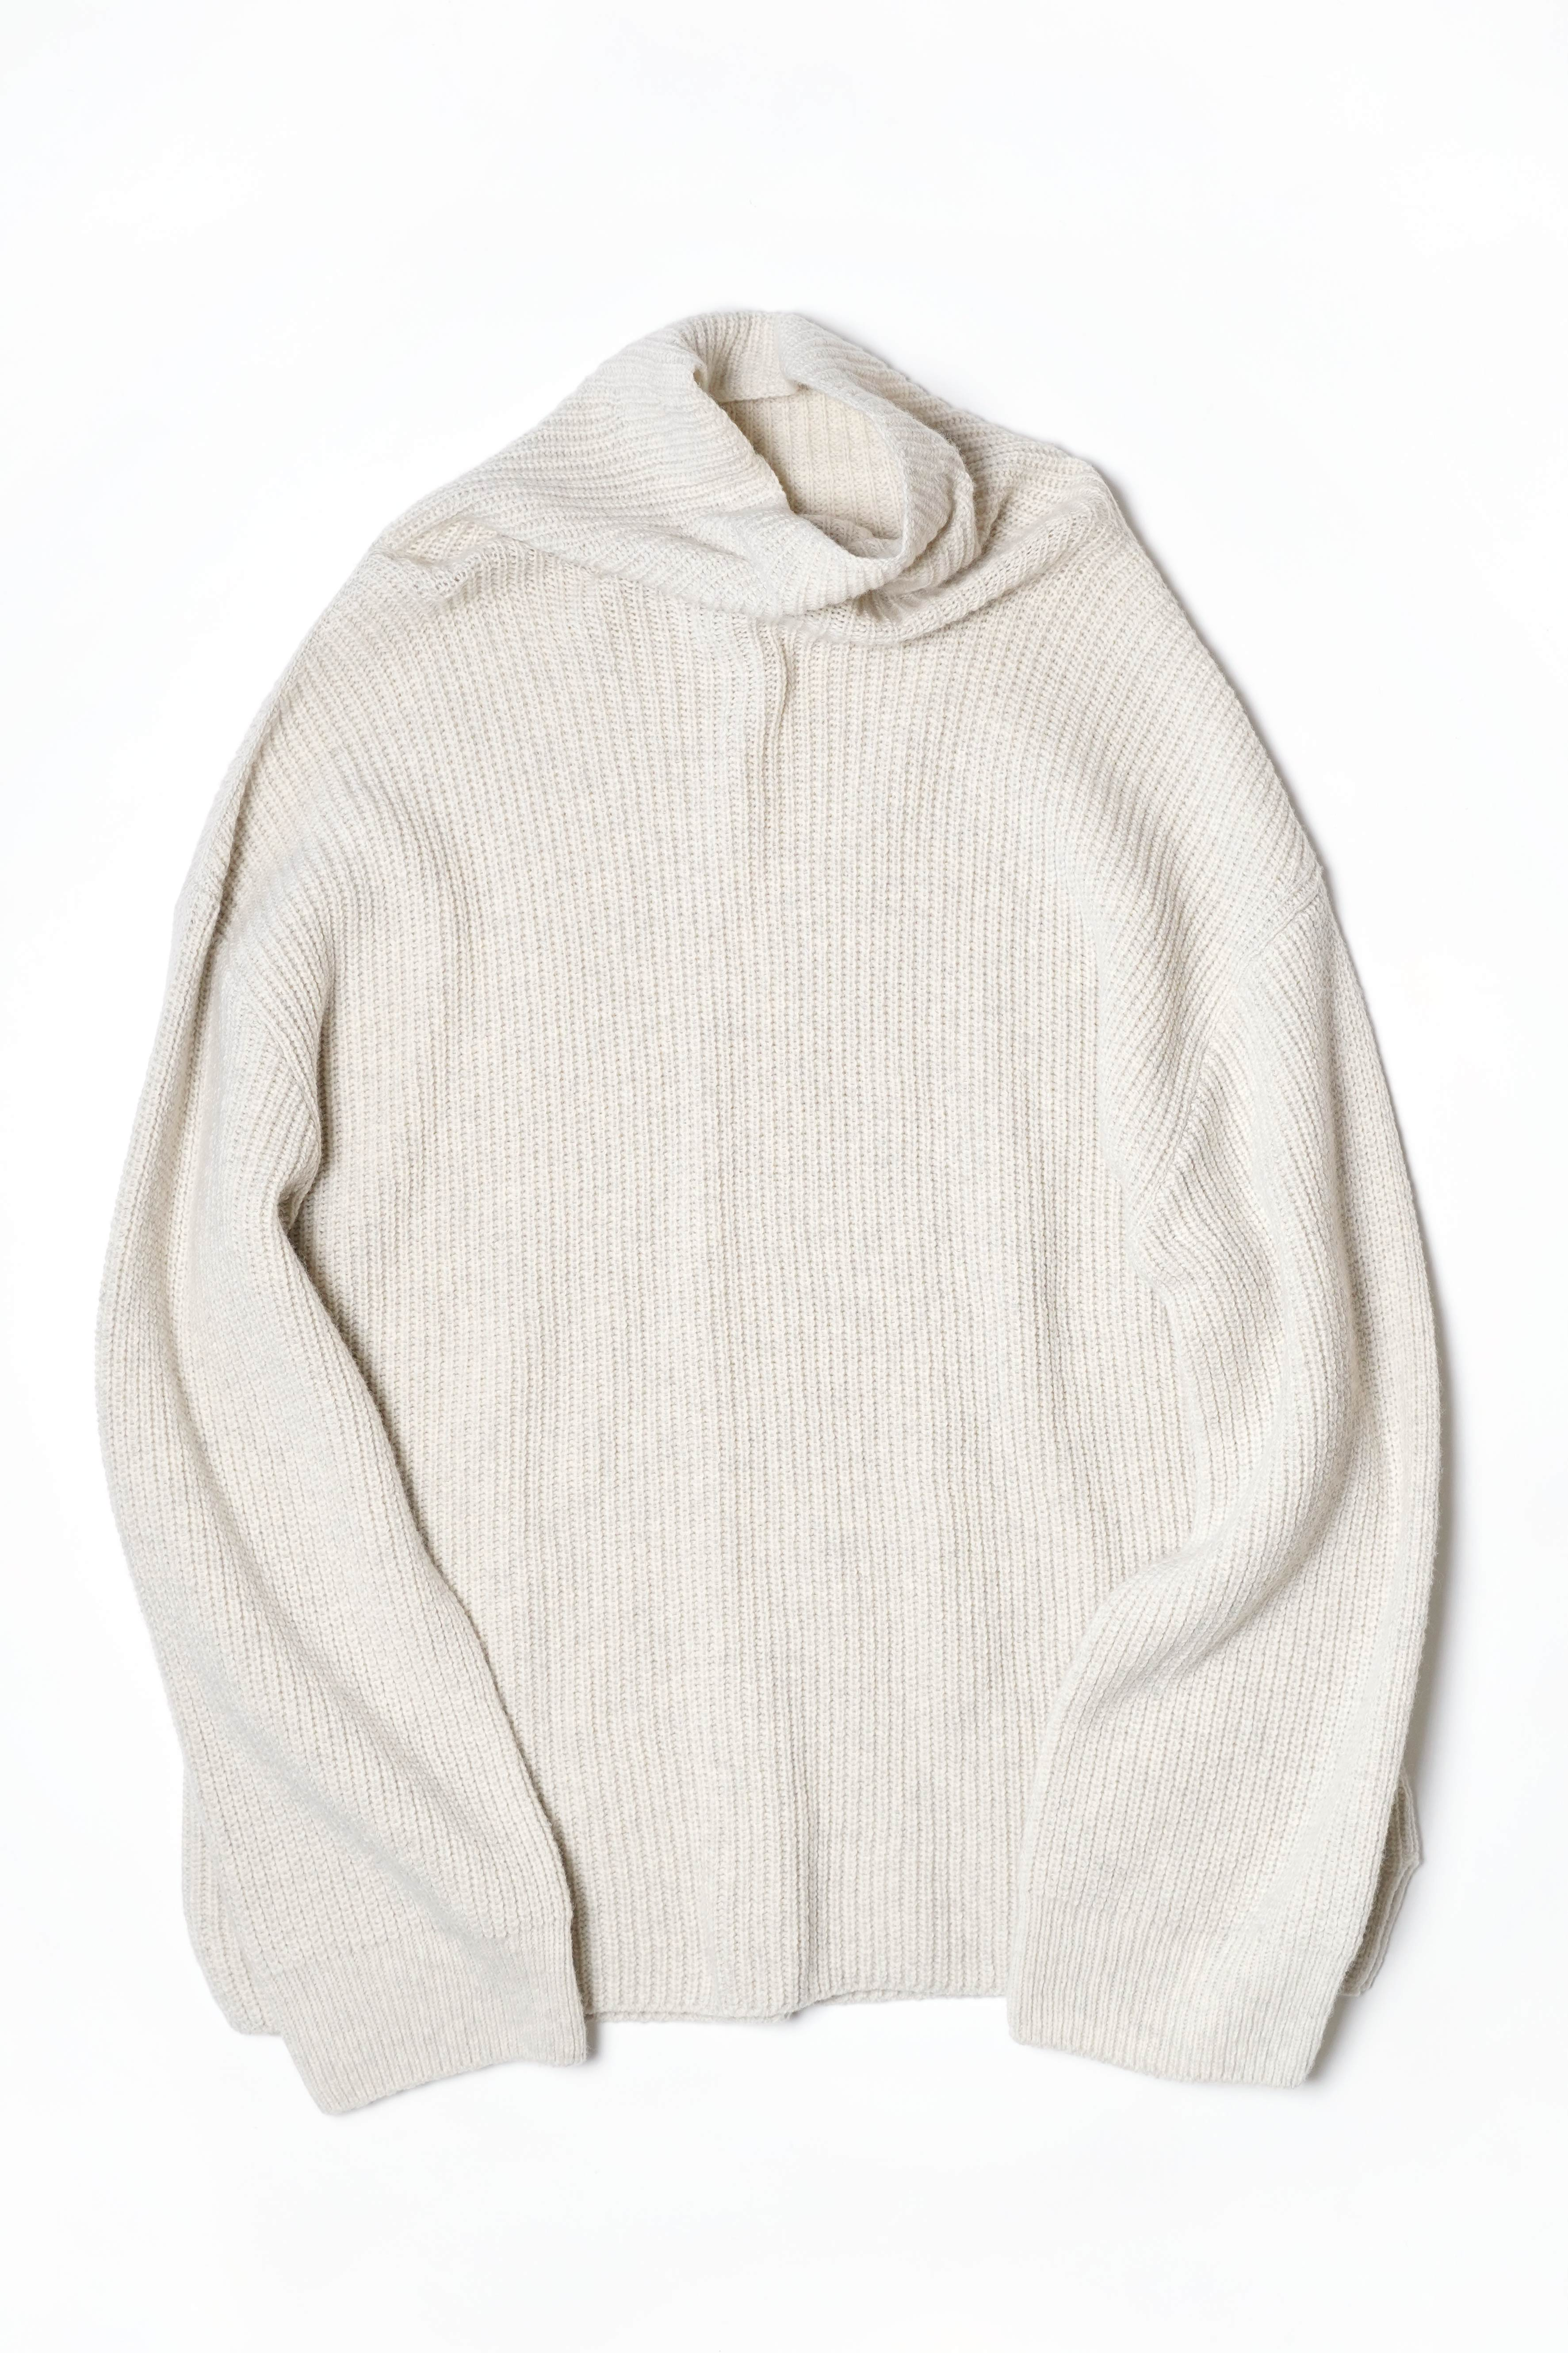 TURTLE NECK KNIT(copy)